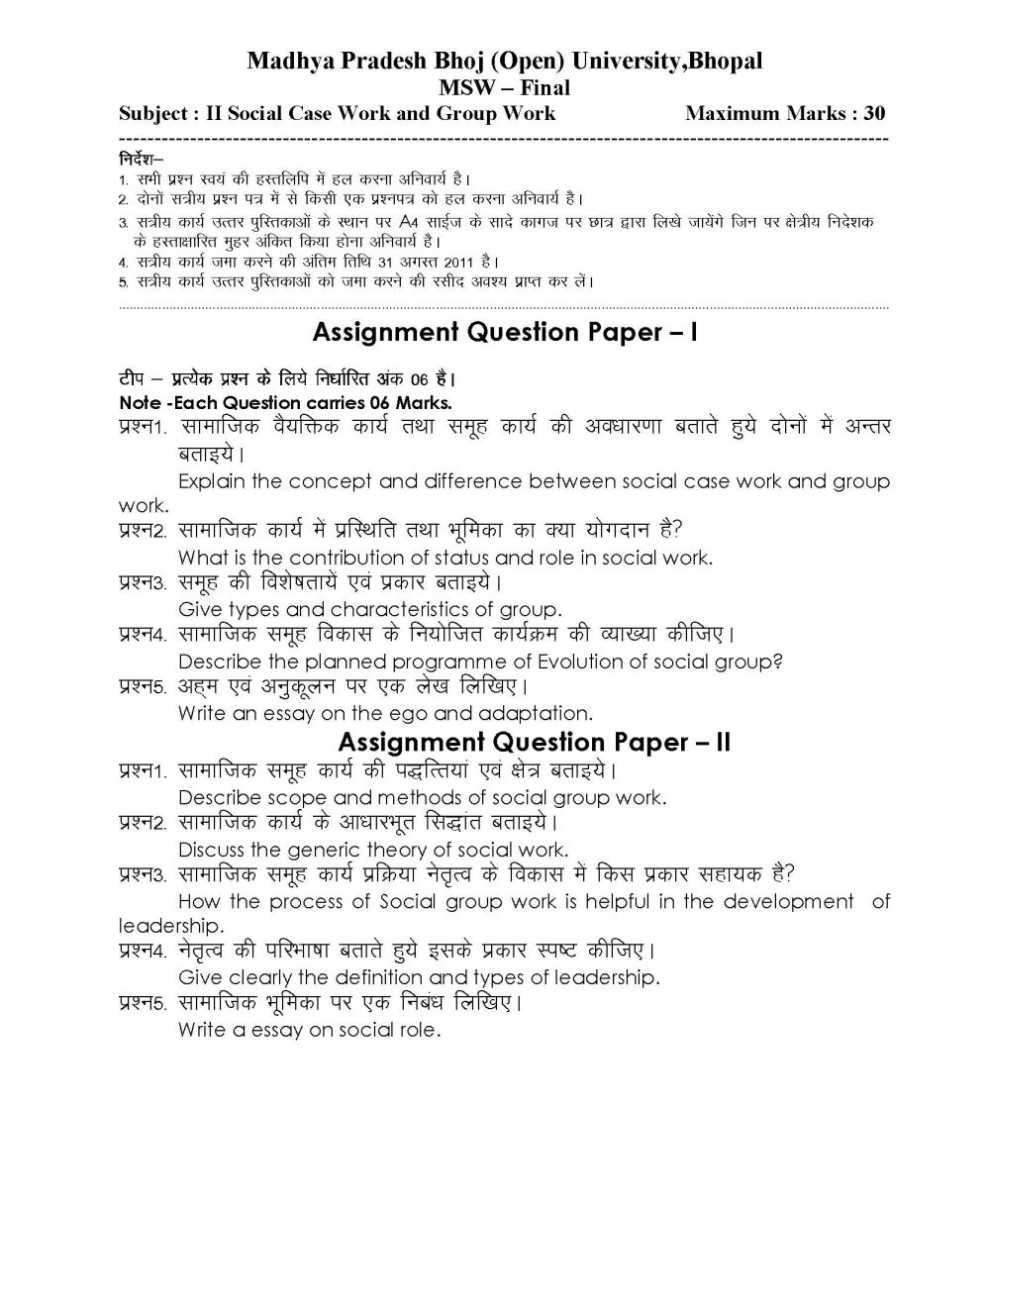 012 Bhoj University Bhopal Msw Definition Essays Surprising Essay Examples Free Love Friendship Full